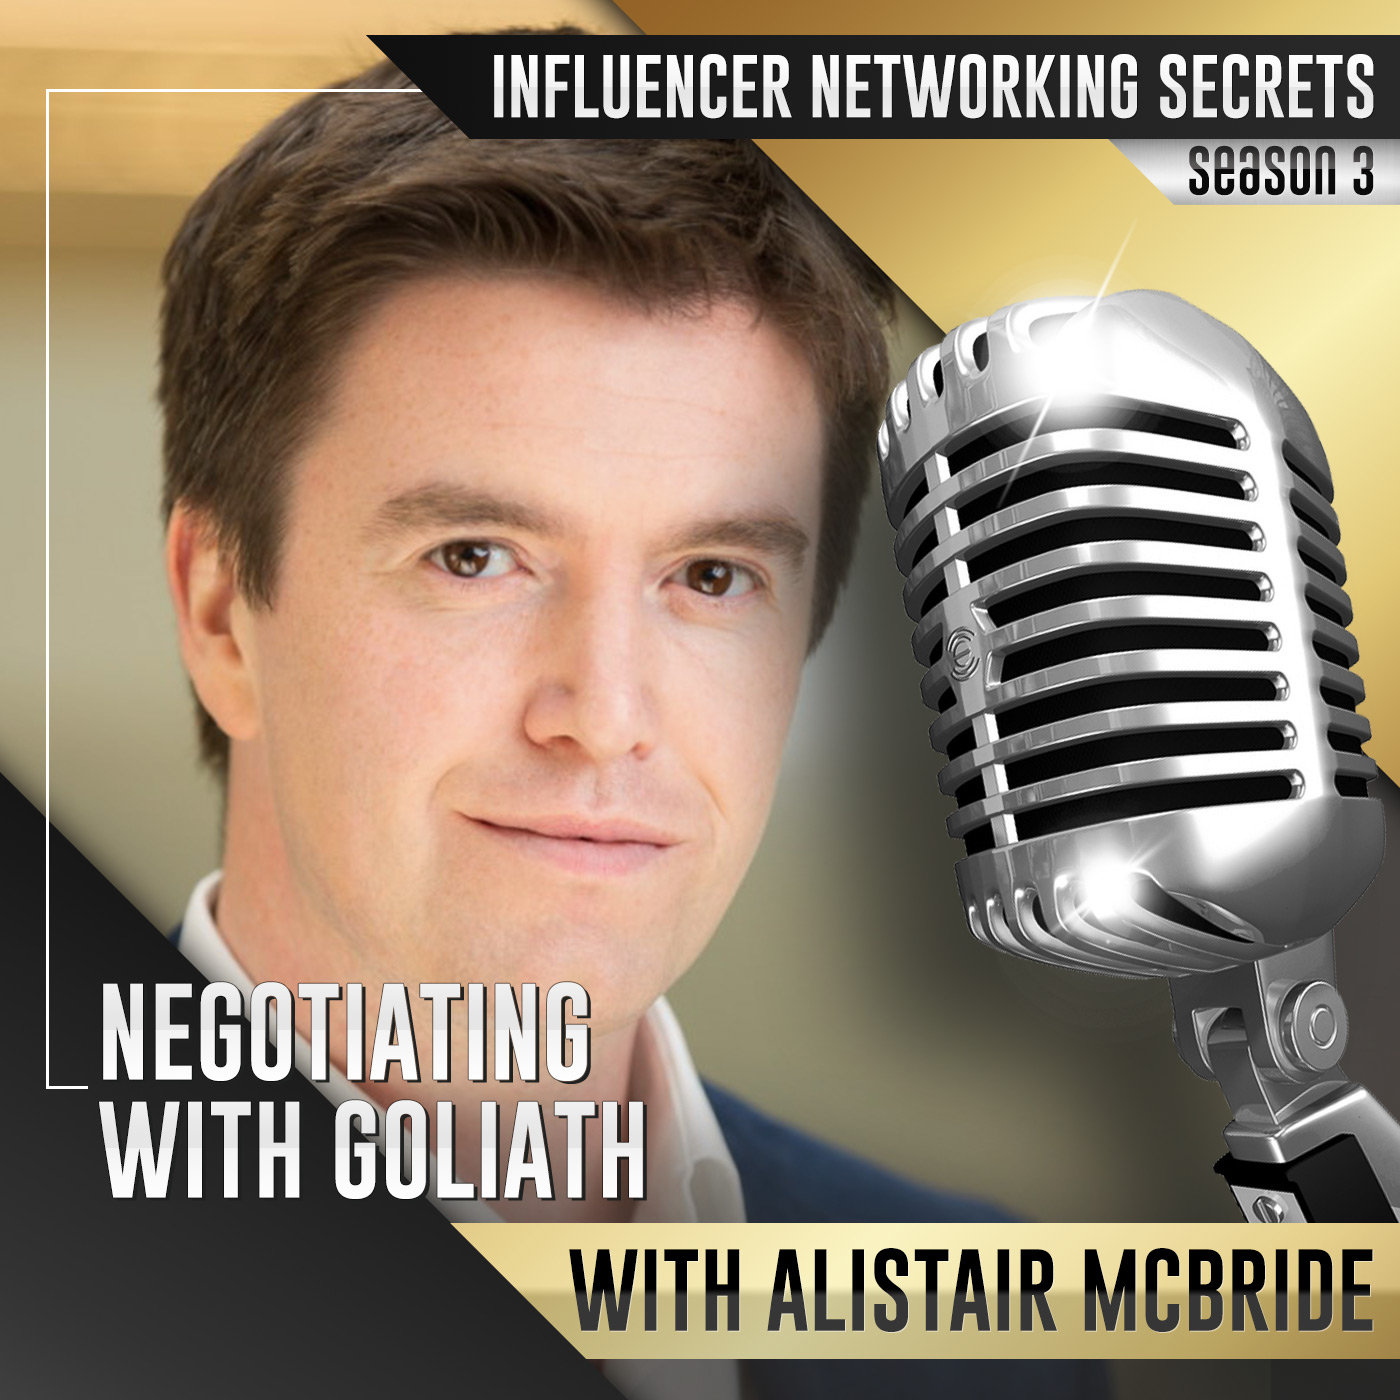 Alistair McBride: Negotiating with Goliath – on Influencer Networking Secrets Podcast